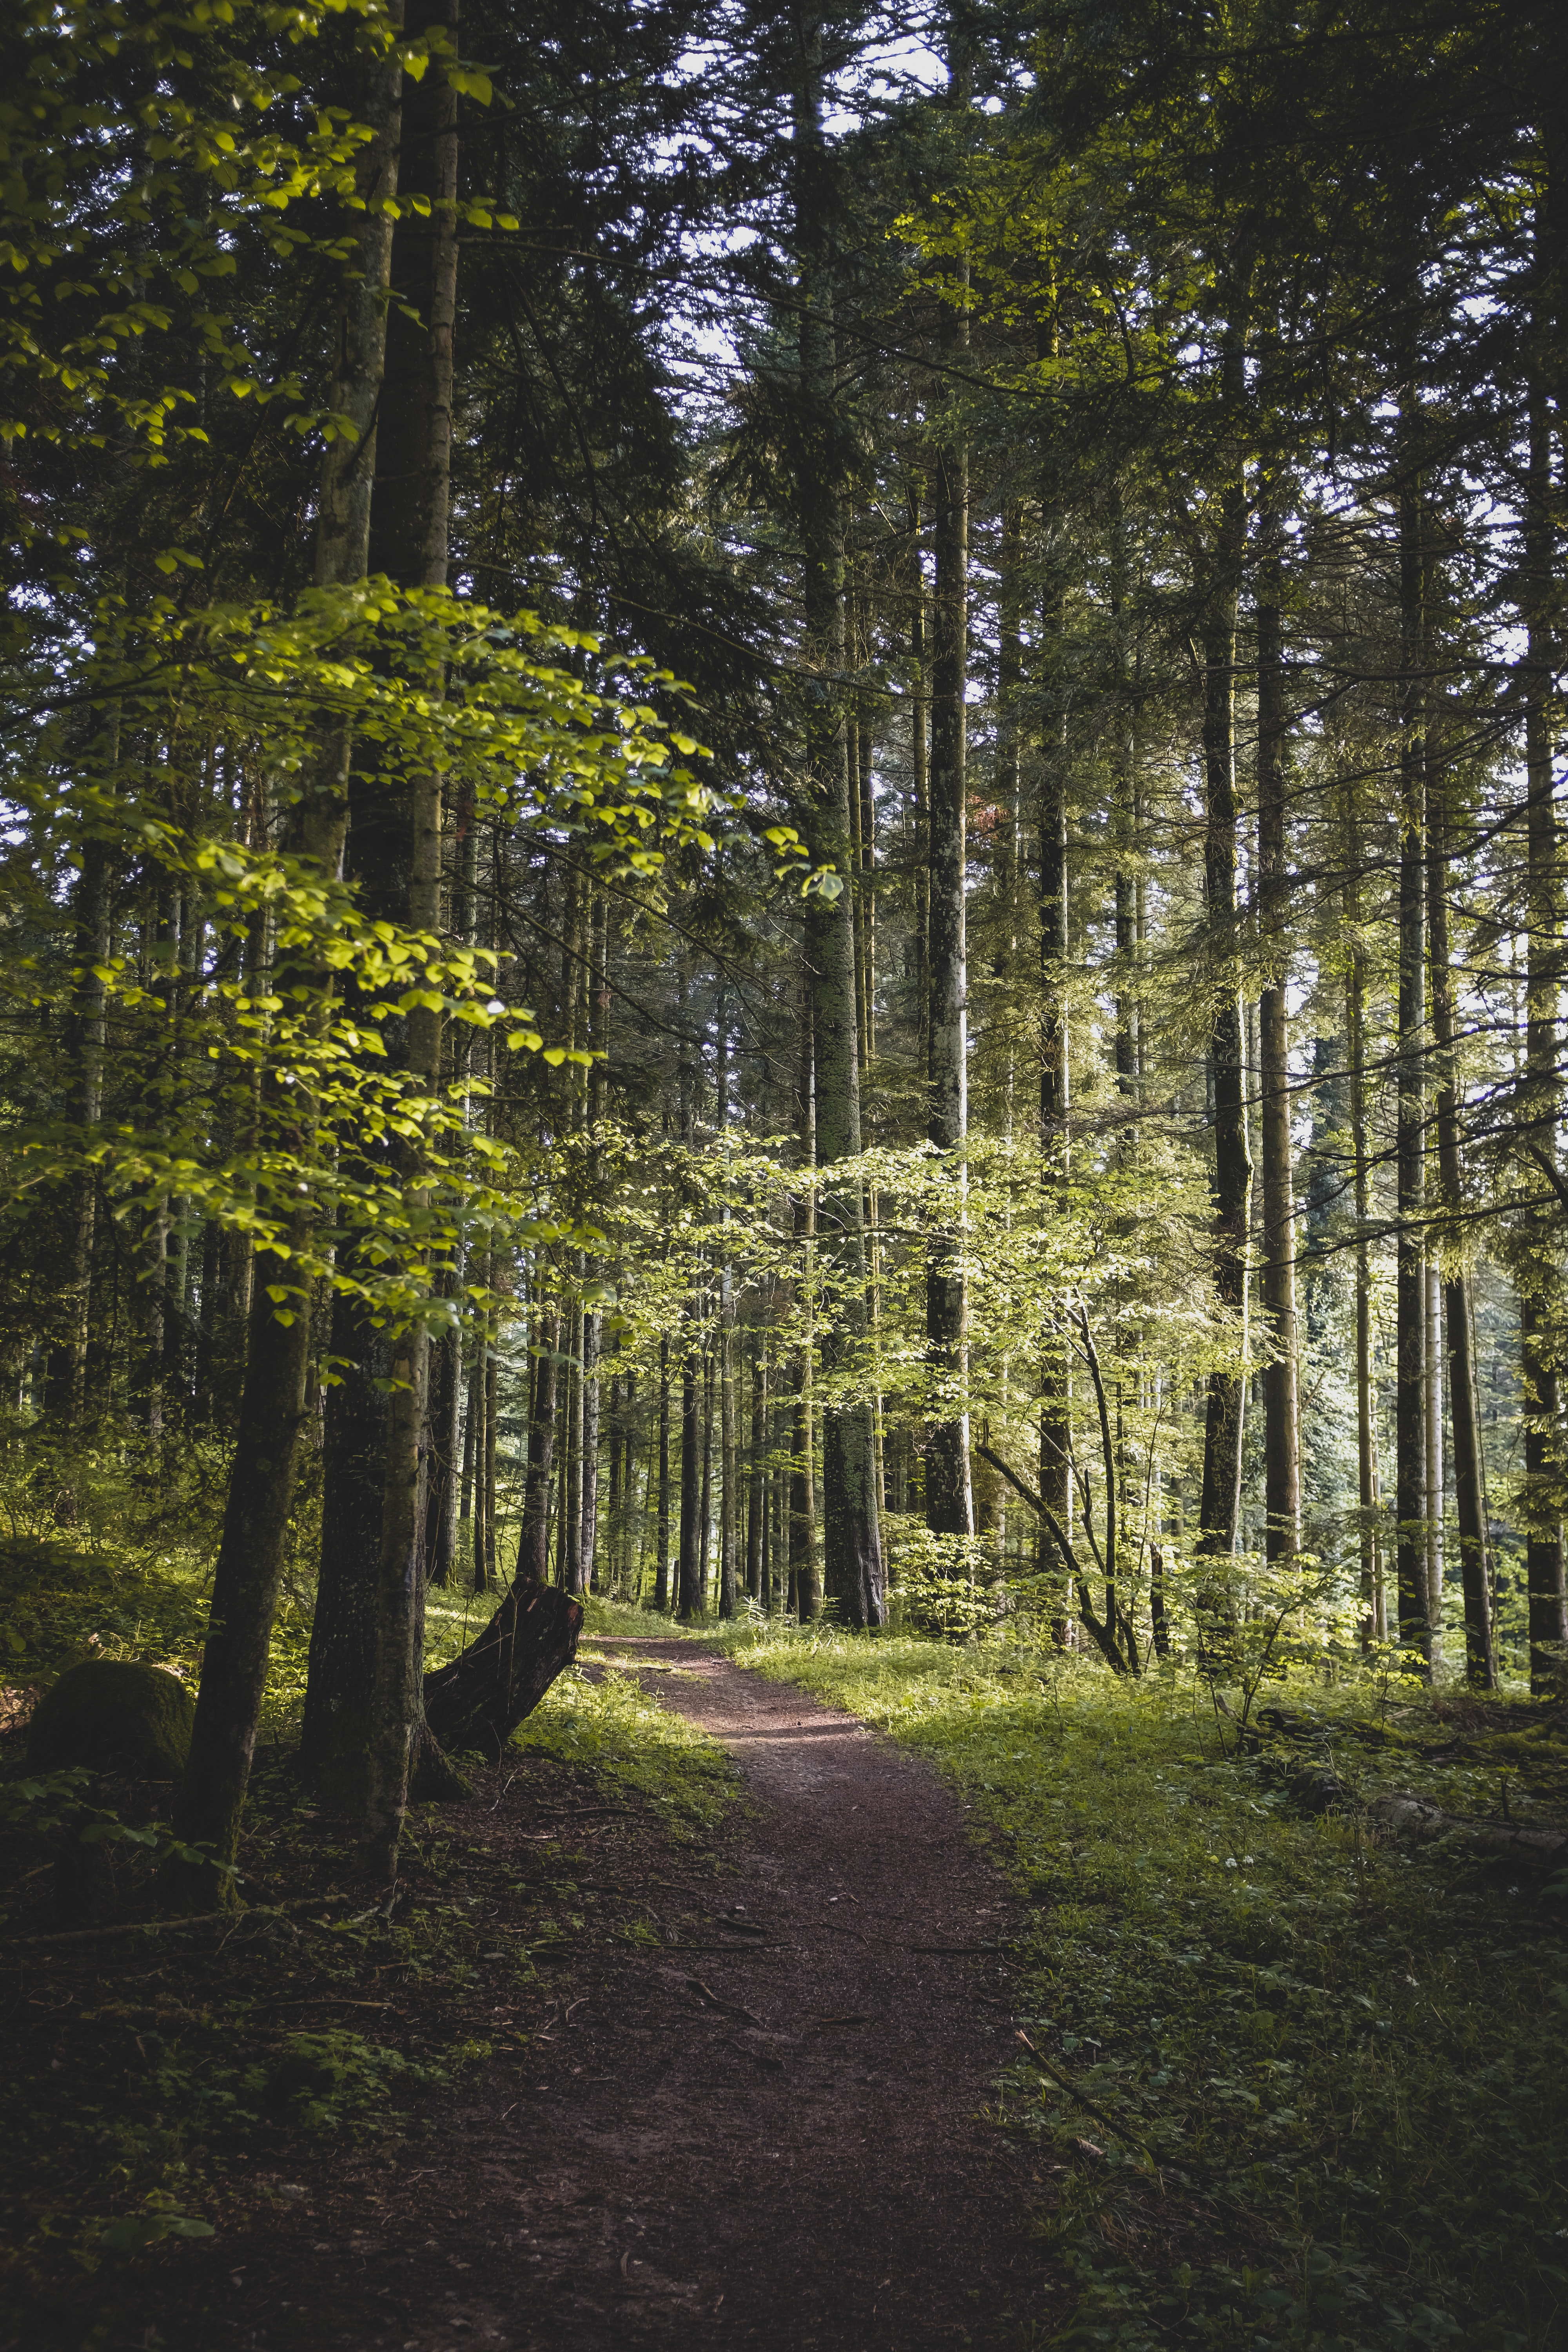 121361 download wallpaper Nature, Forest, Path, Trees, Branches, Leaves screensavers and pictures for free